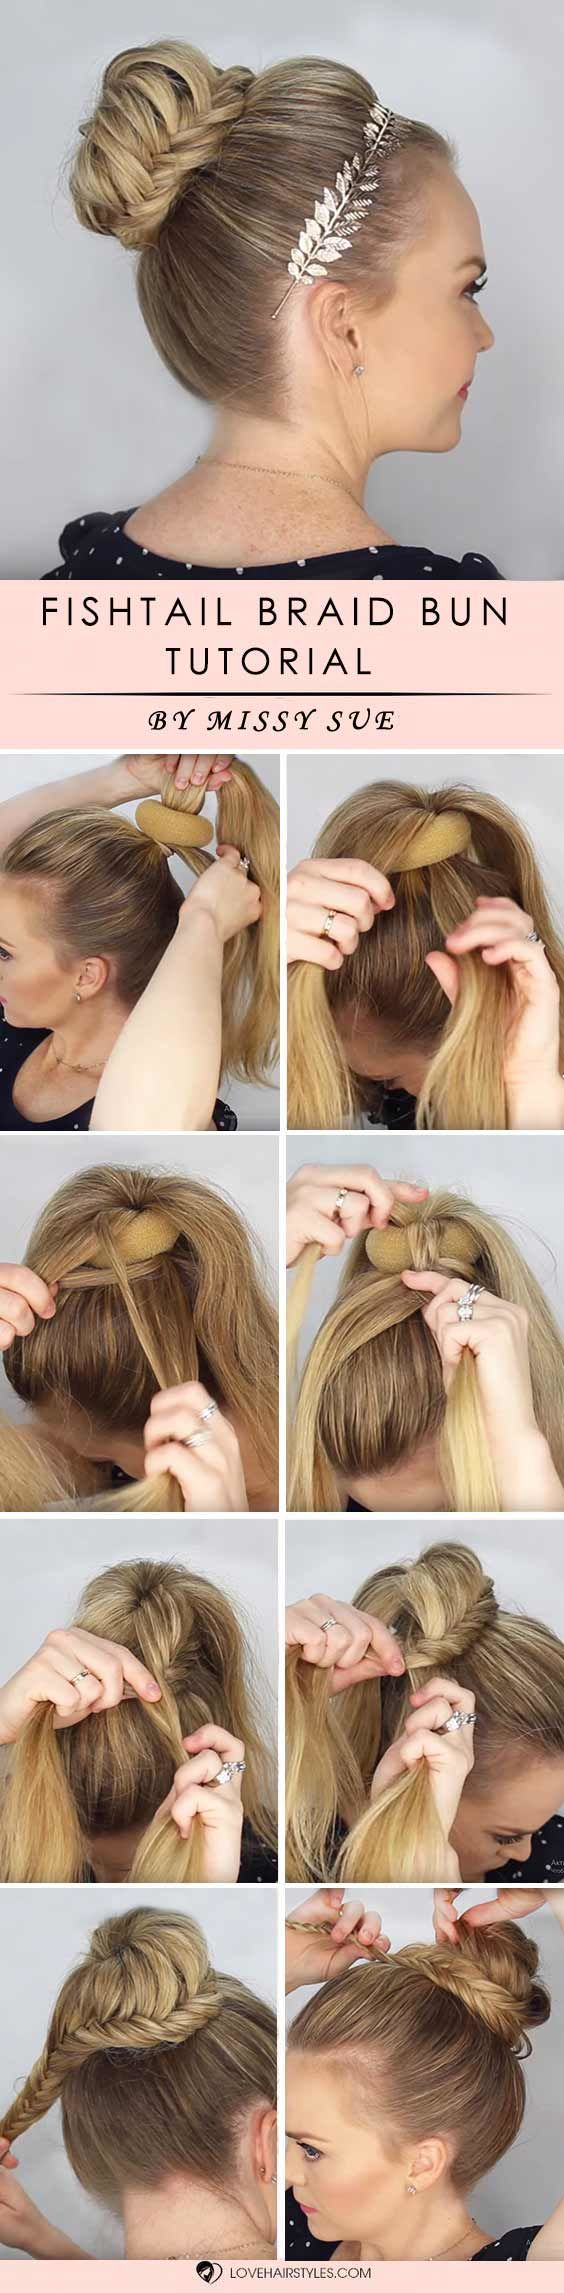 Fishtail Braid Bun #braids #hairtutorials